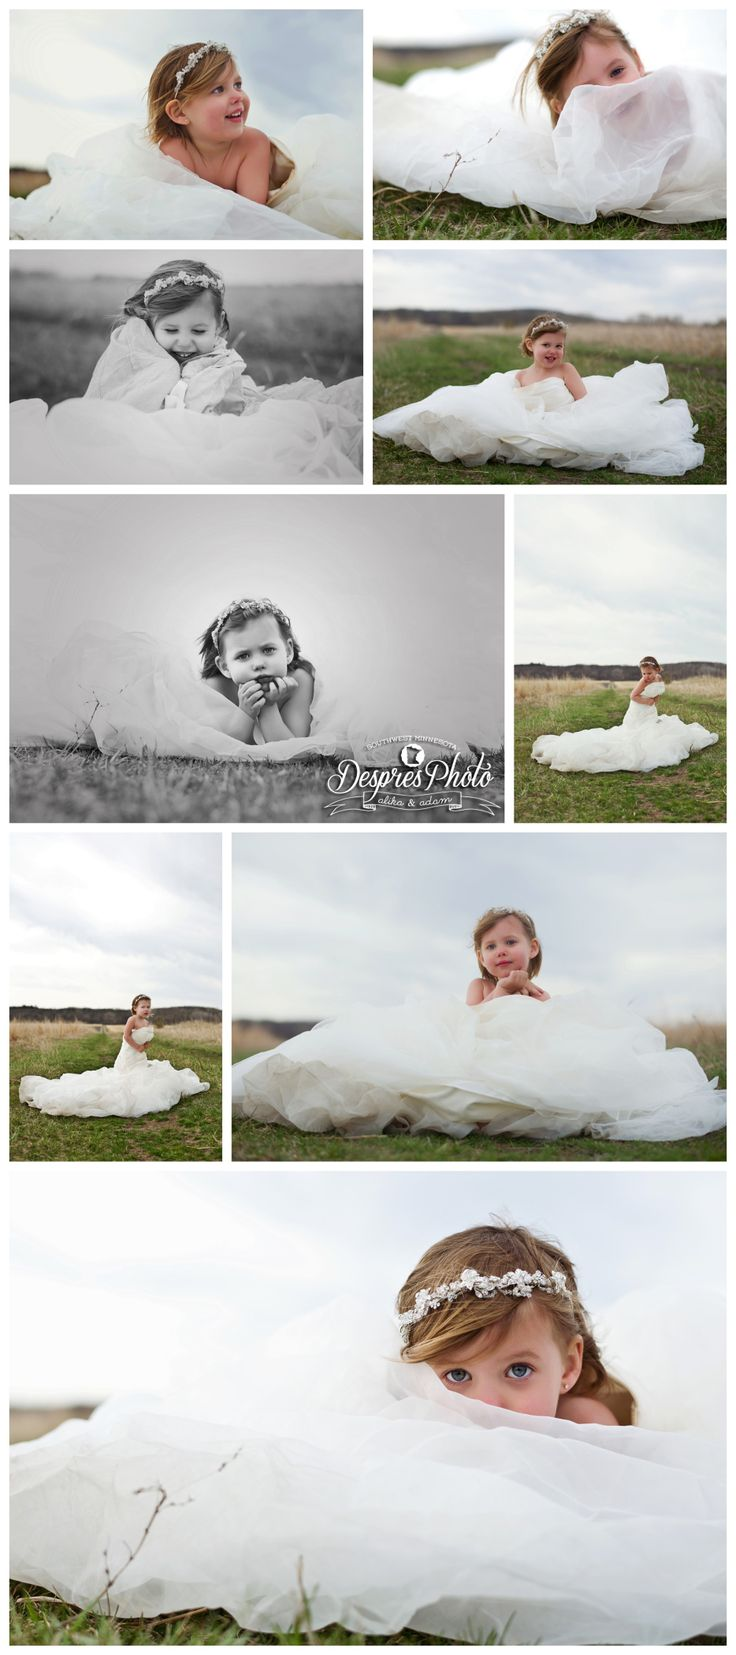 In Mommy's Wedding Dress-A Mother's simple wish- to have her daughter wear her weddings dress for portraits. The photos and the concept say it all. Pure love <3 Adam and I photographed Geri & Cory's Wedding last August. It was an honor to be able to shoot Briella's portraits in her mothers dress.- Alika Faythe